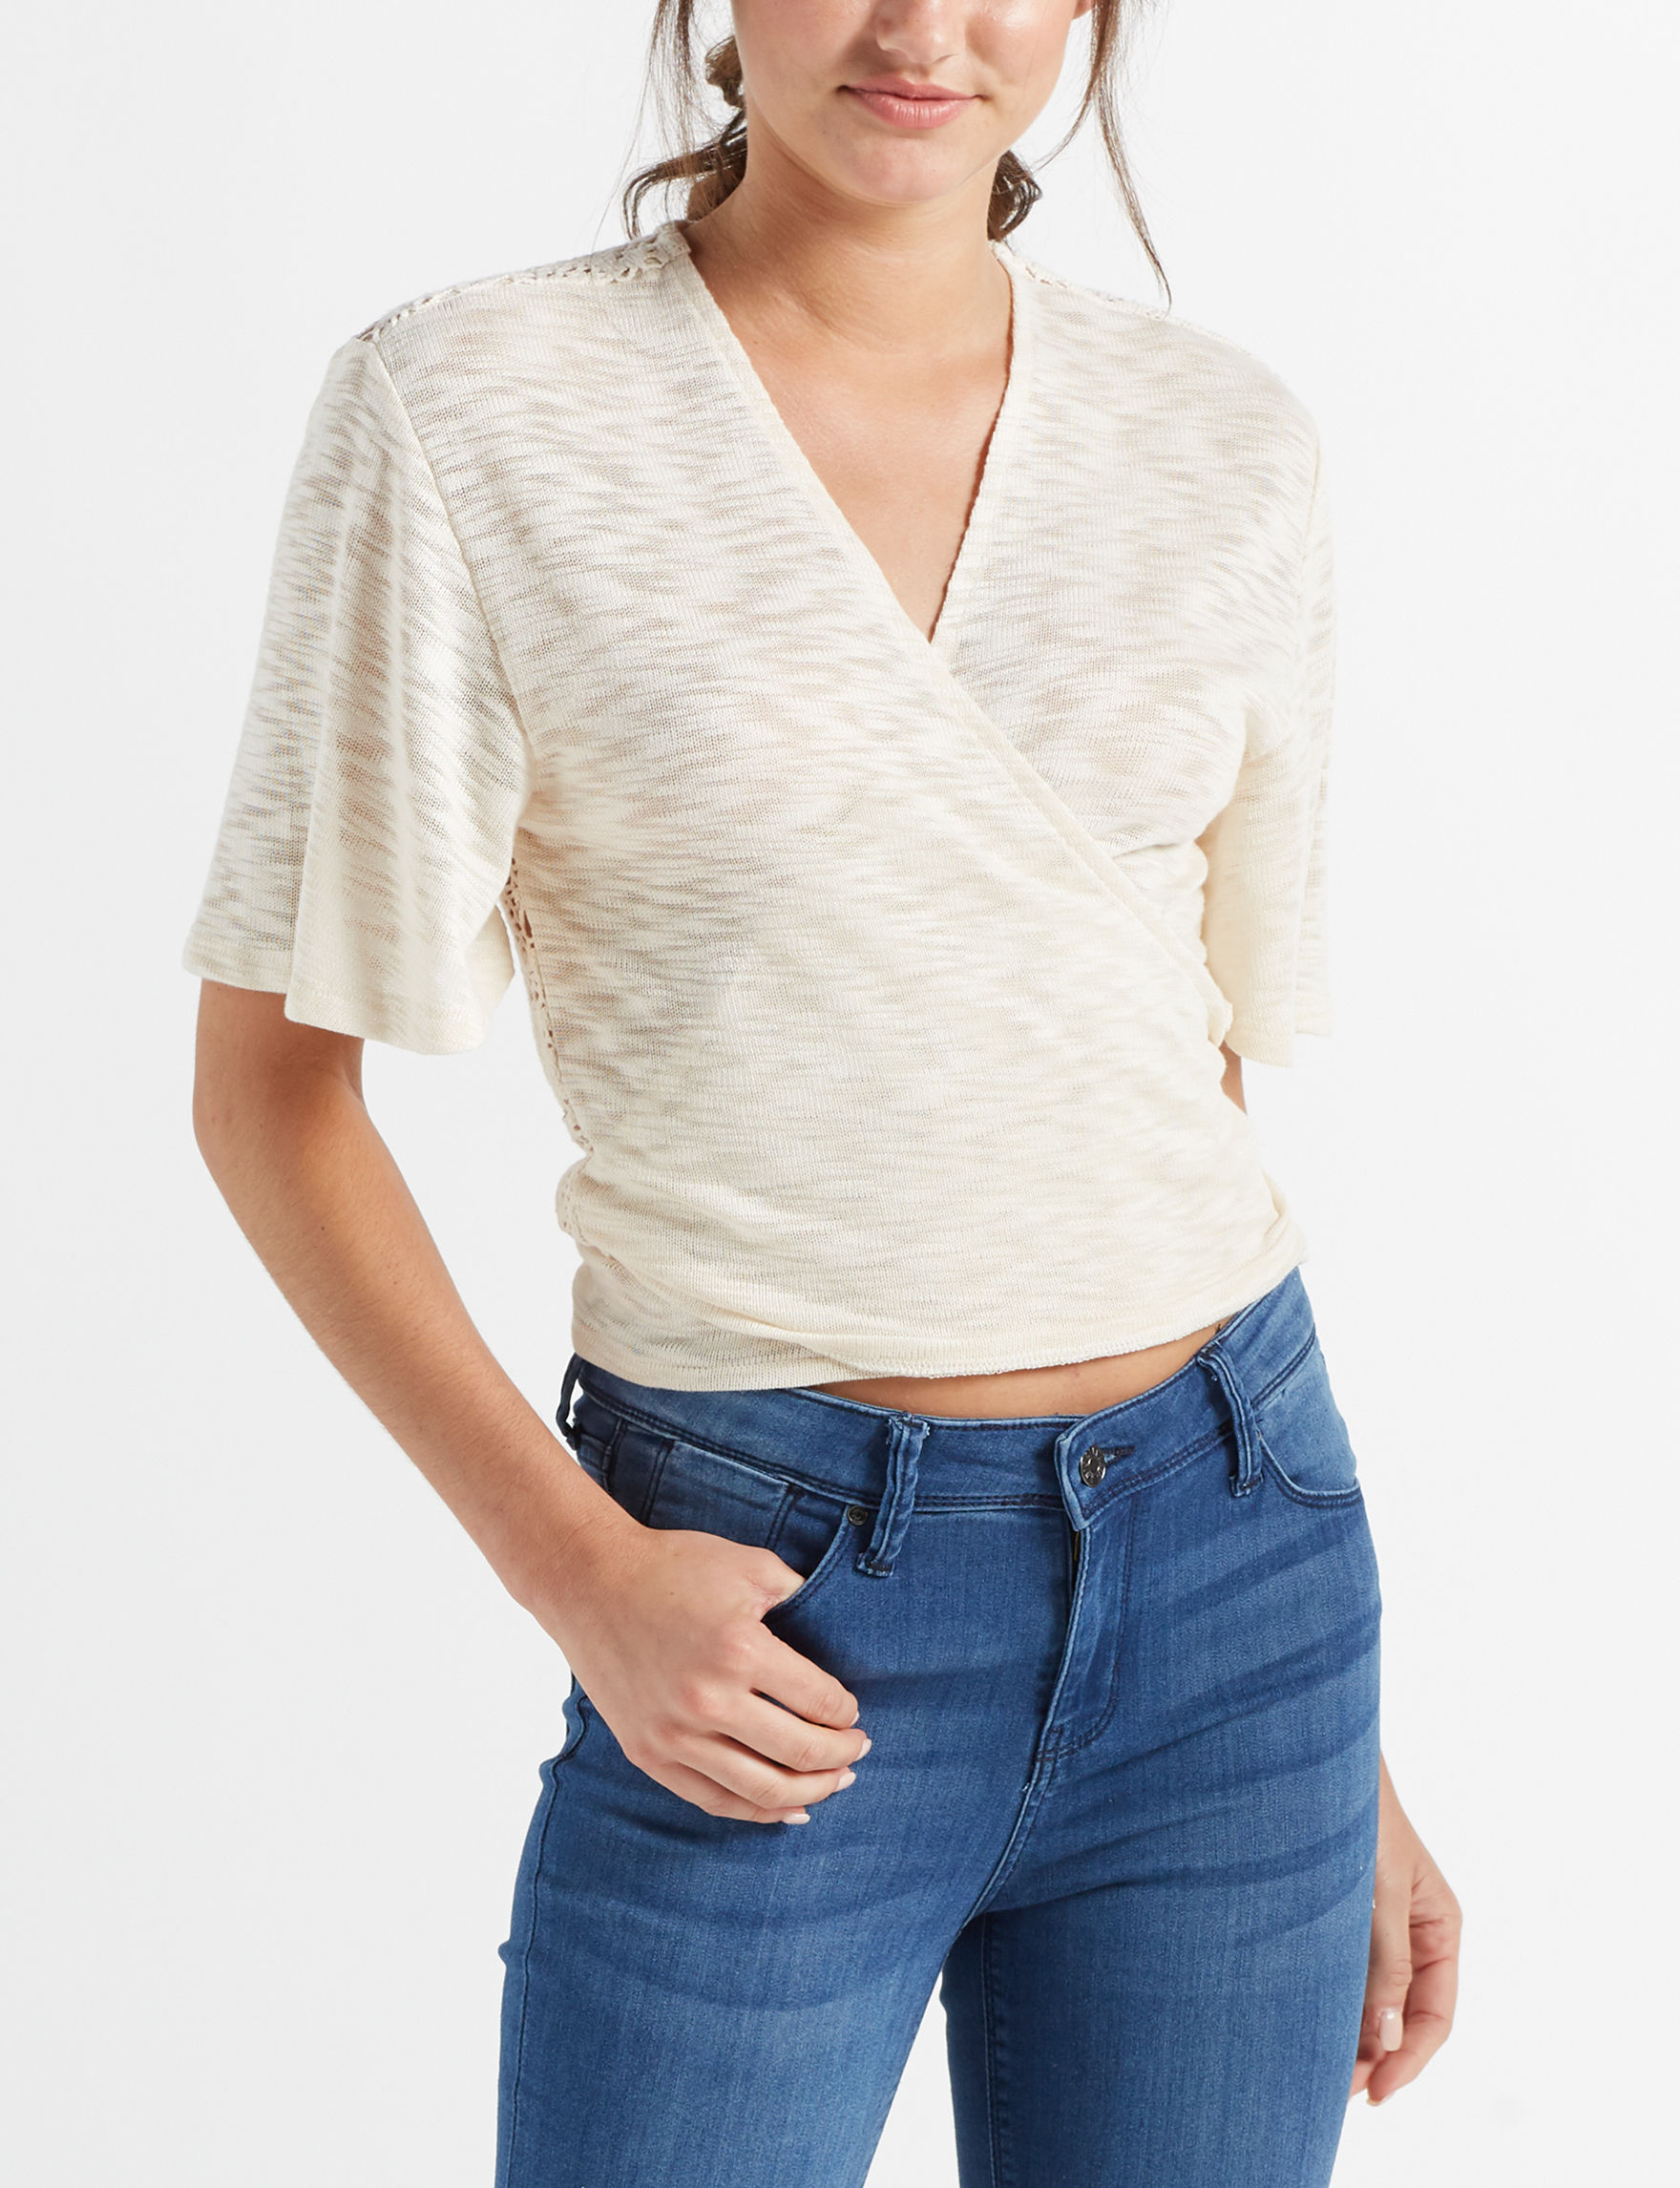 It's Our Time Natural Shirts & Blouses